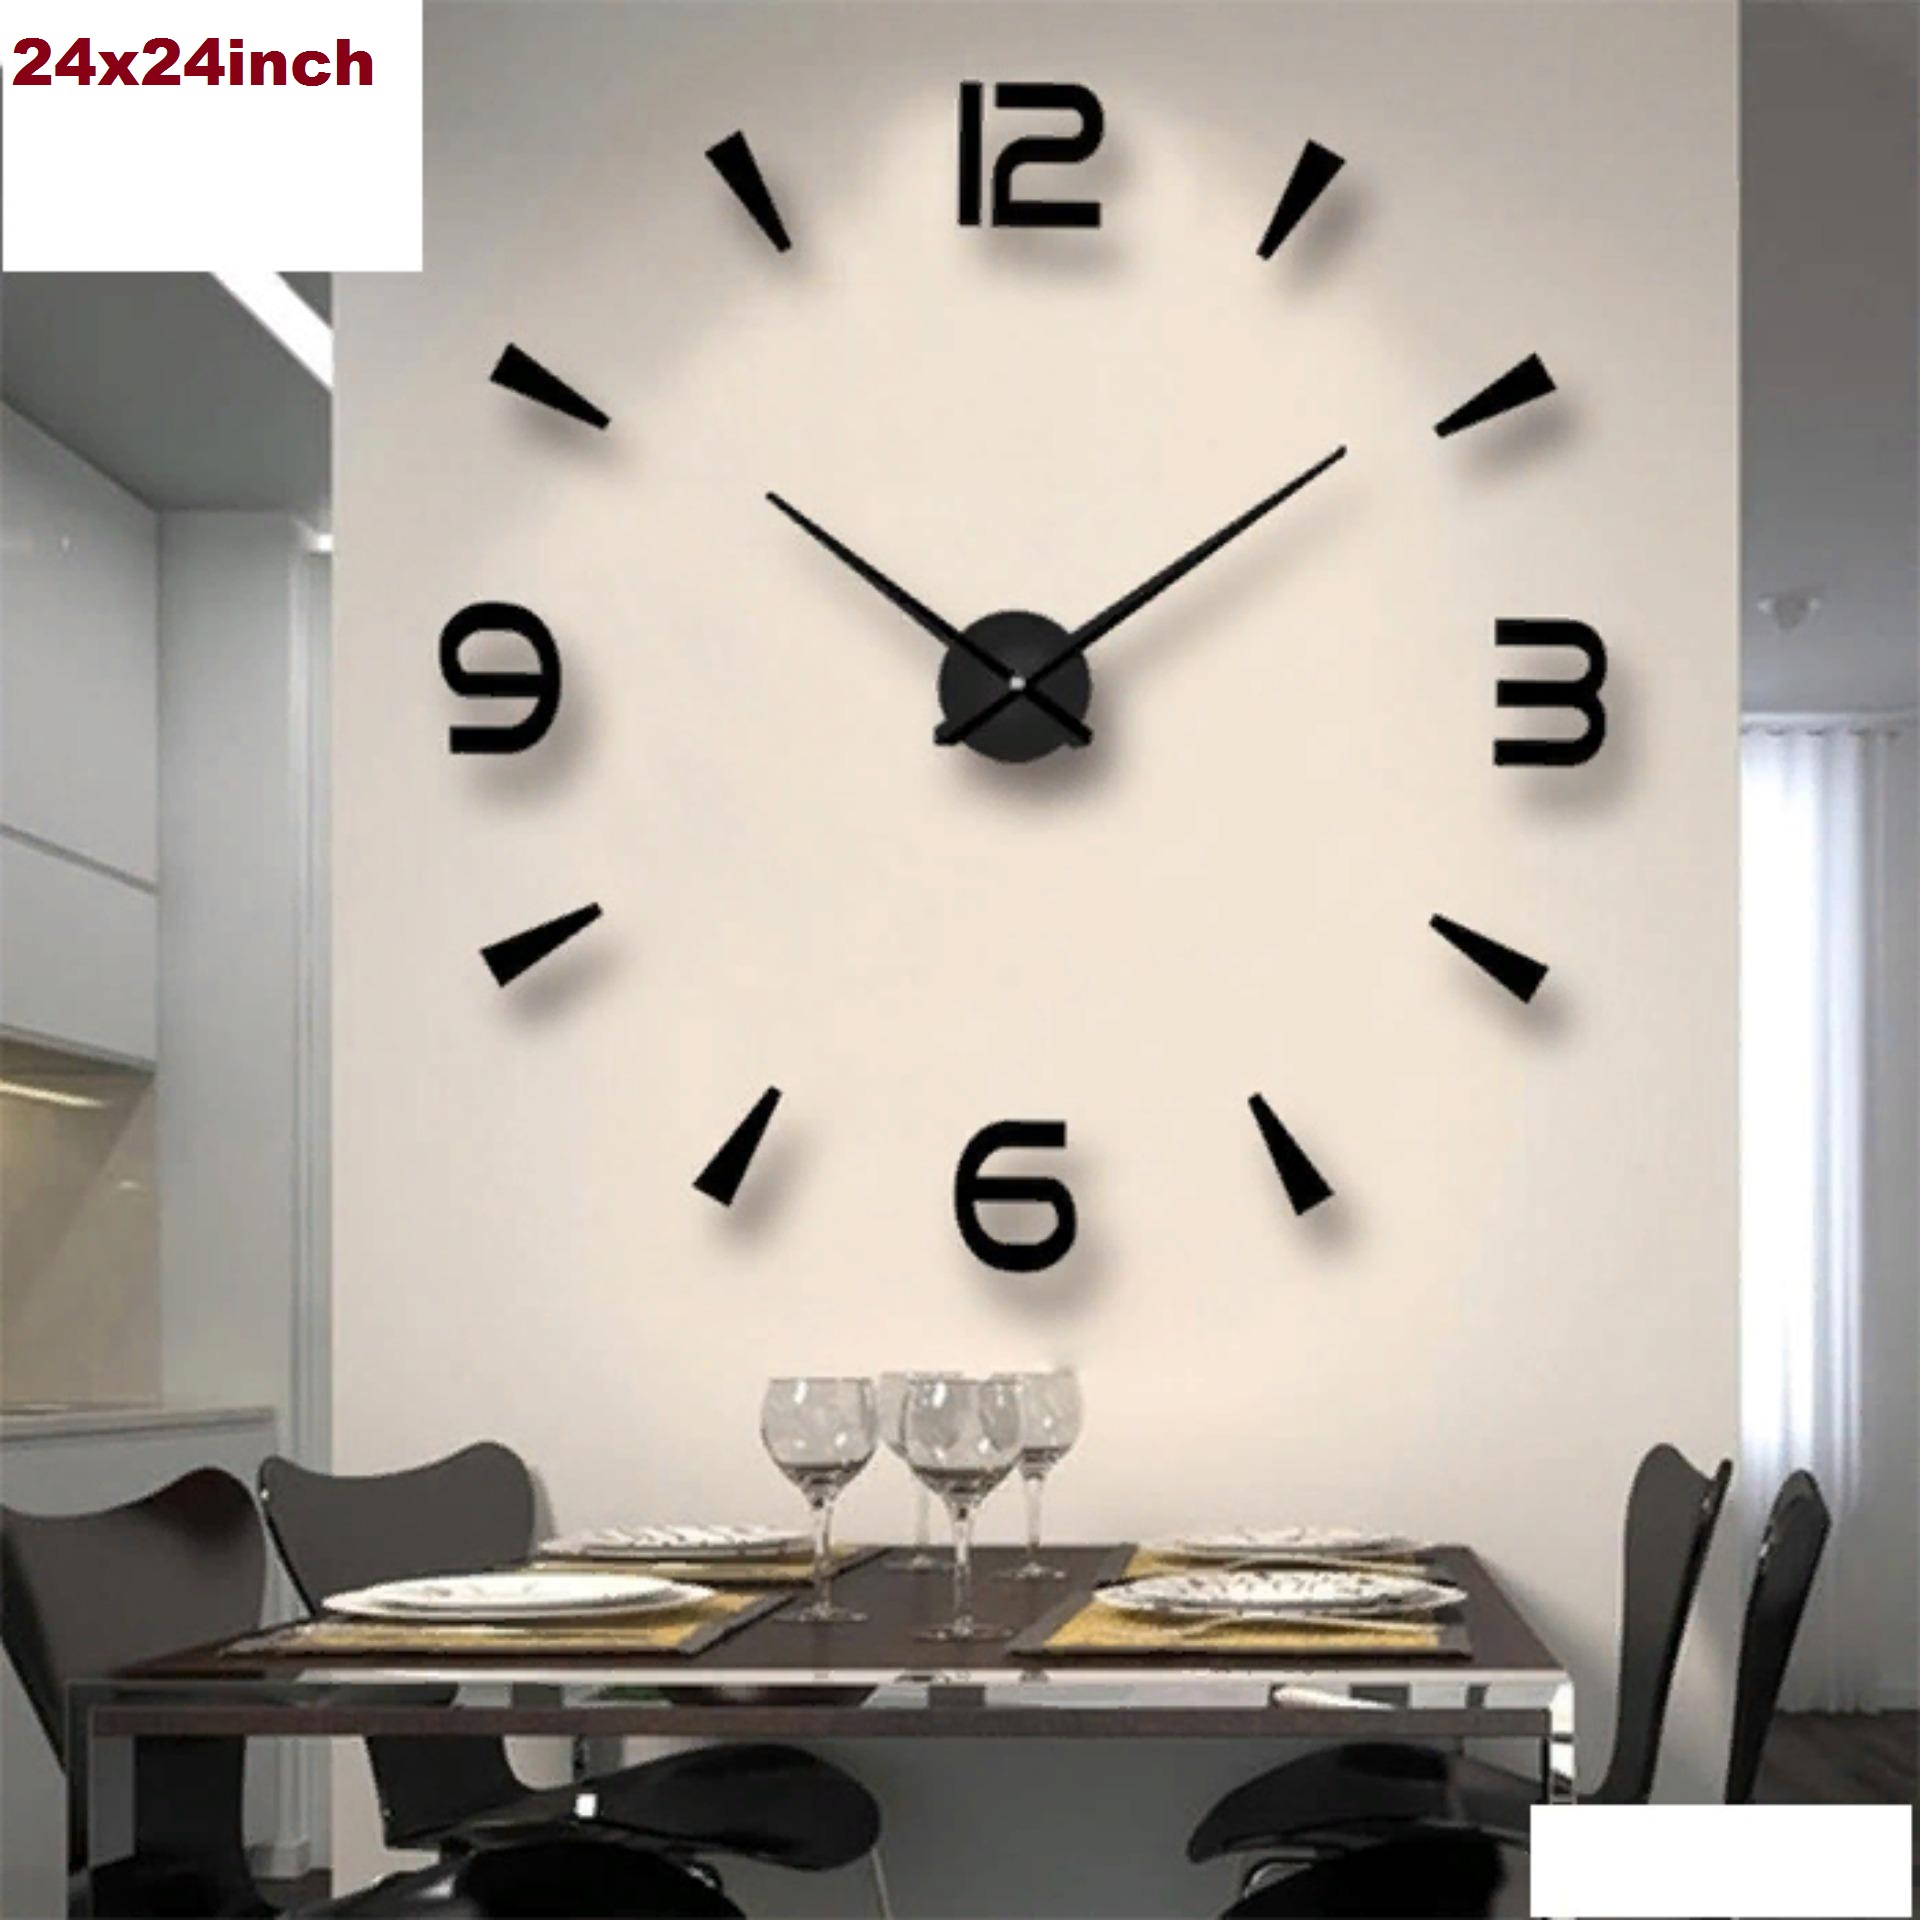 2020 Large 3D Acrylic Wall Clock for room decor, living room, drawing room, guest room, modern design